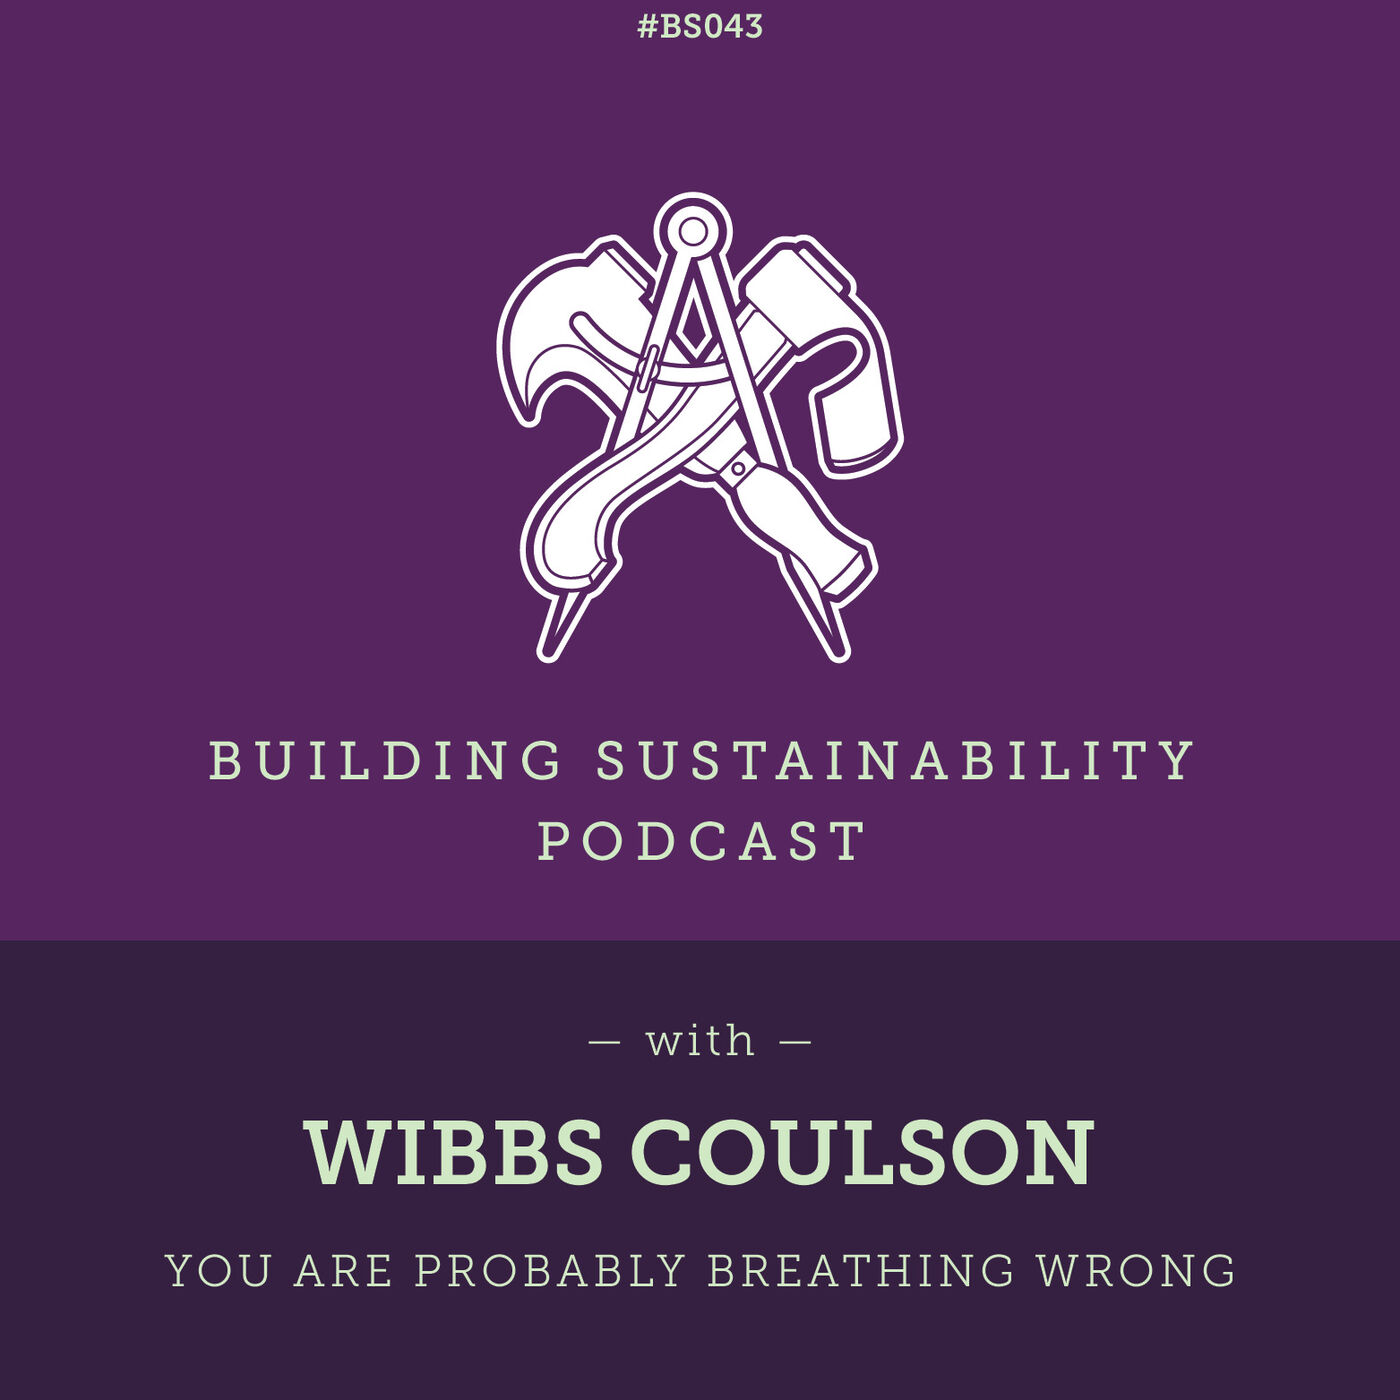 You Are Probably Breathing Wrong - Wibbs Coulson - BS043